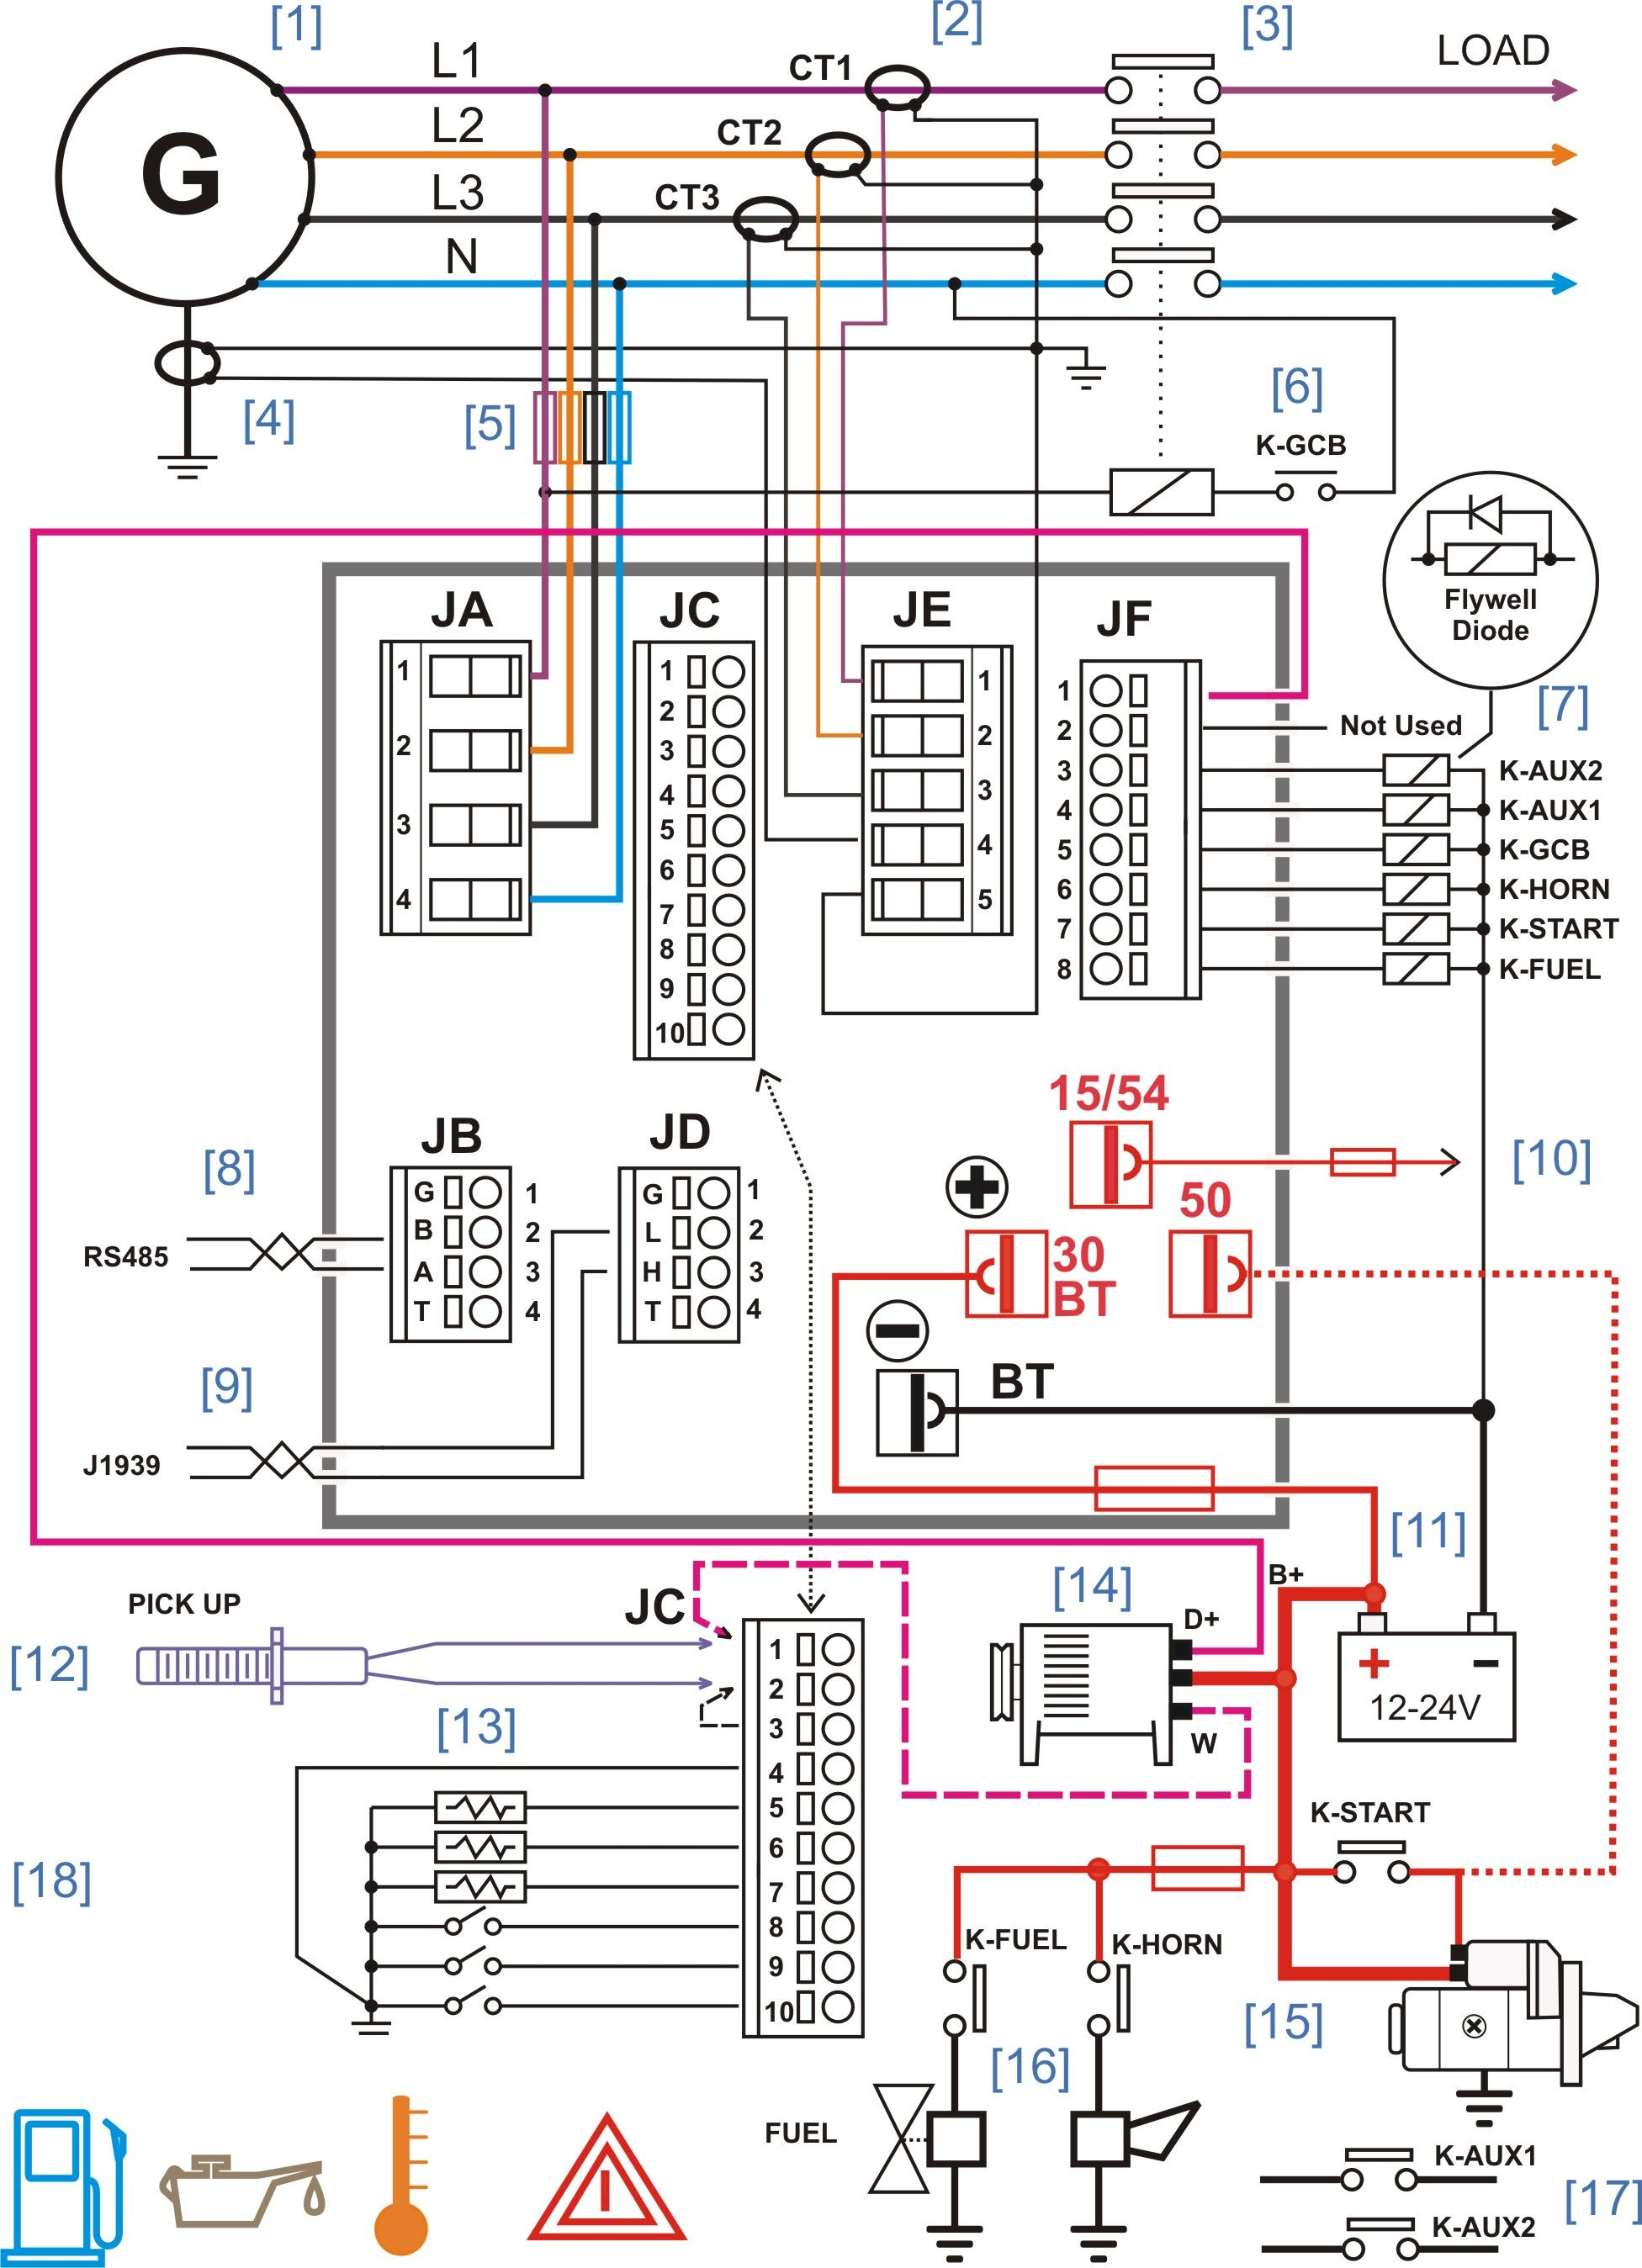 e32695bfa9986573569381a039ba42a6 diesel generator control panel wiring diagram gr pinterest generator wiring diagrams at gsmx.co